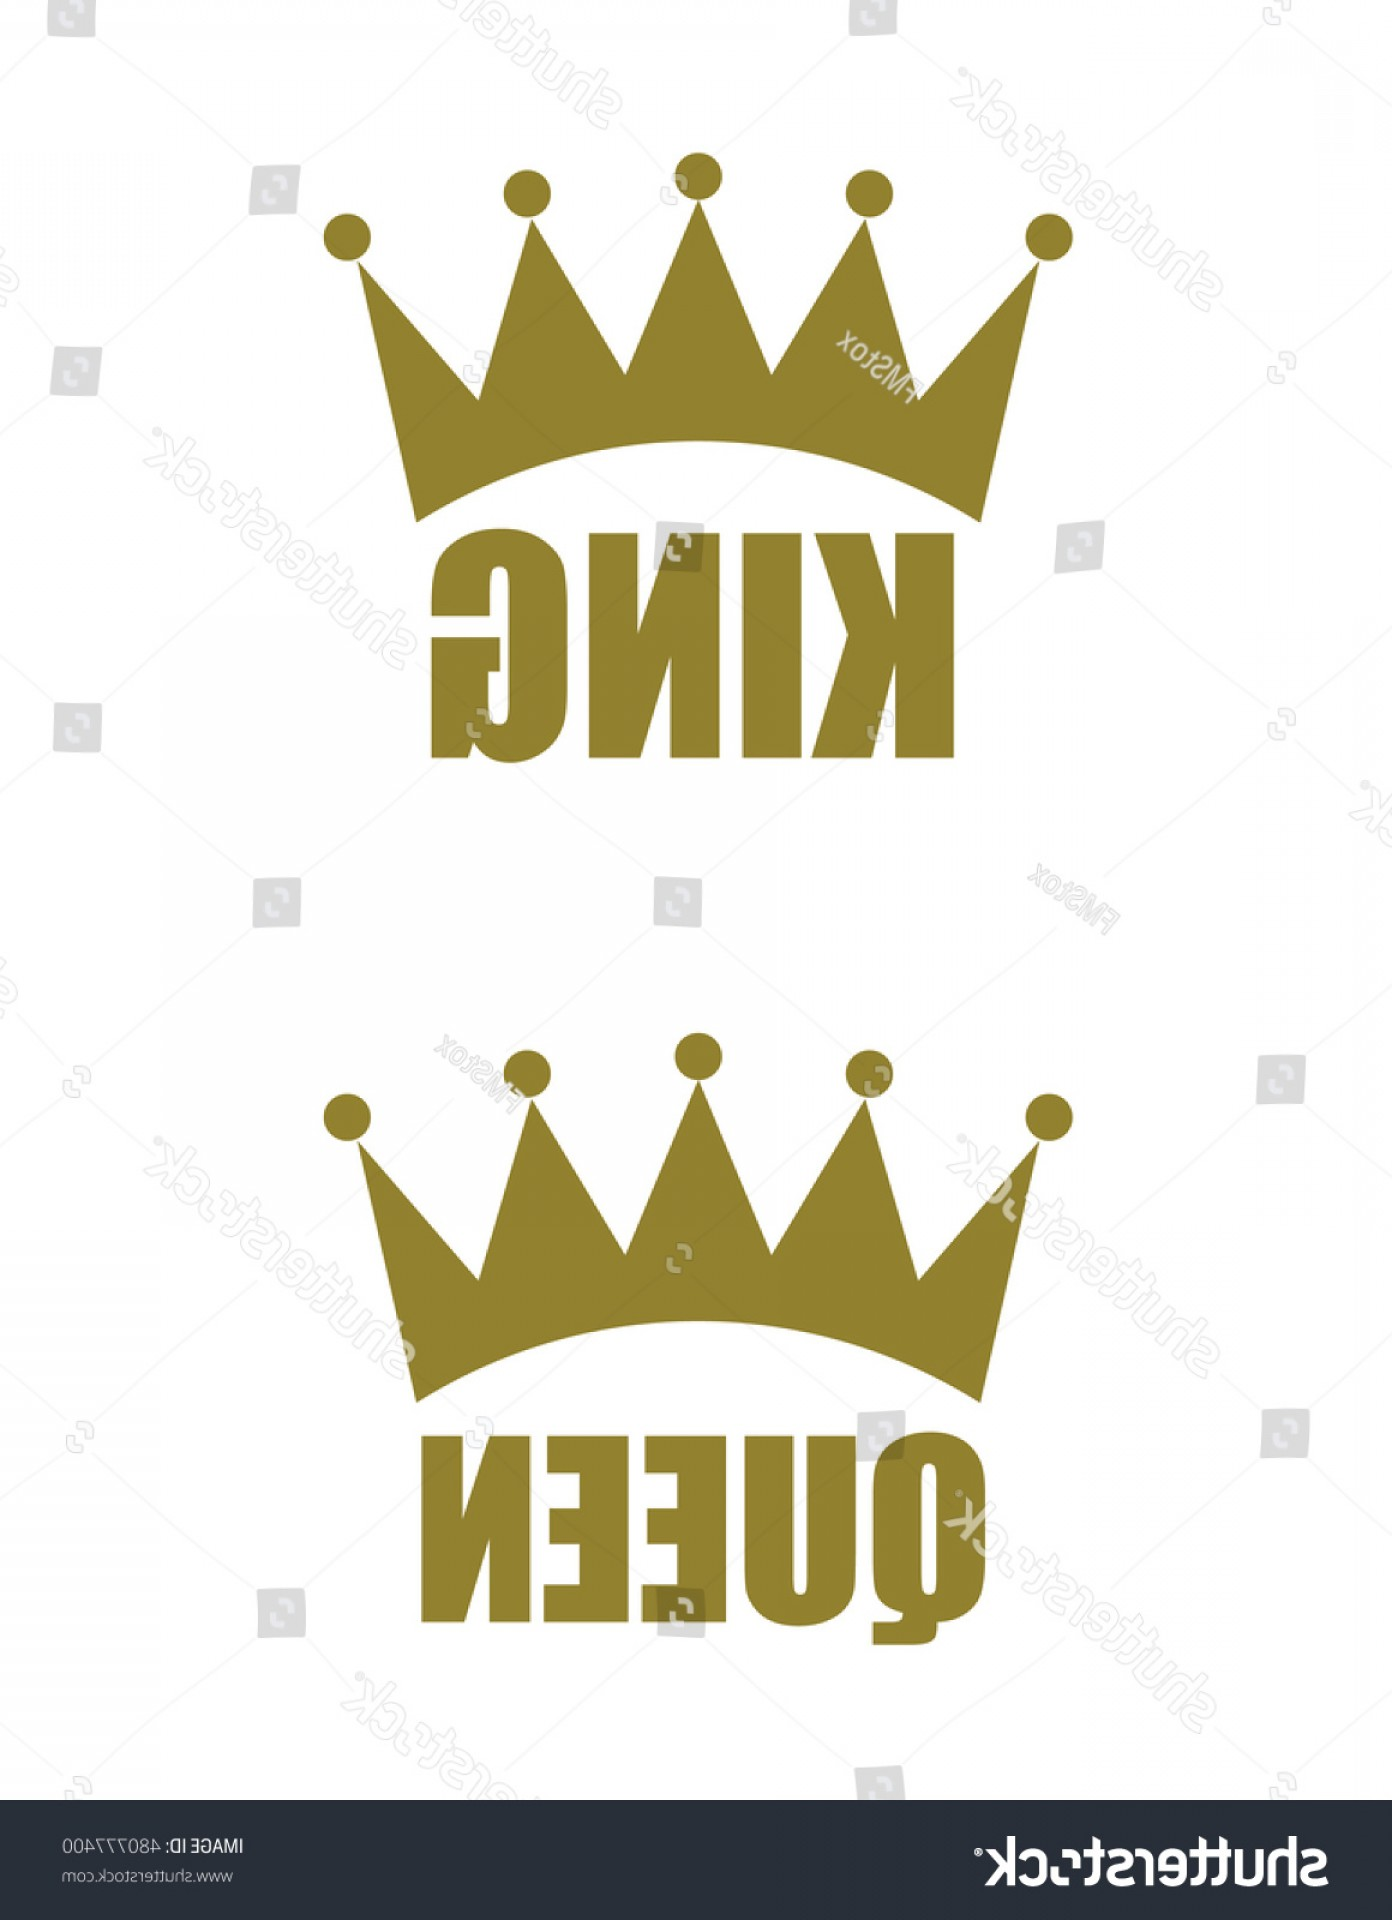 King And Queen Vector: Vector King Queen Crown Icons